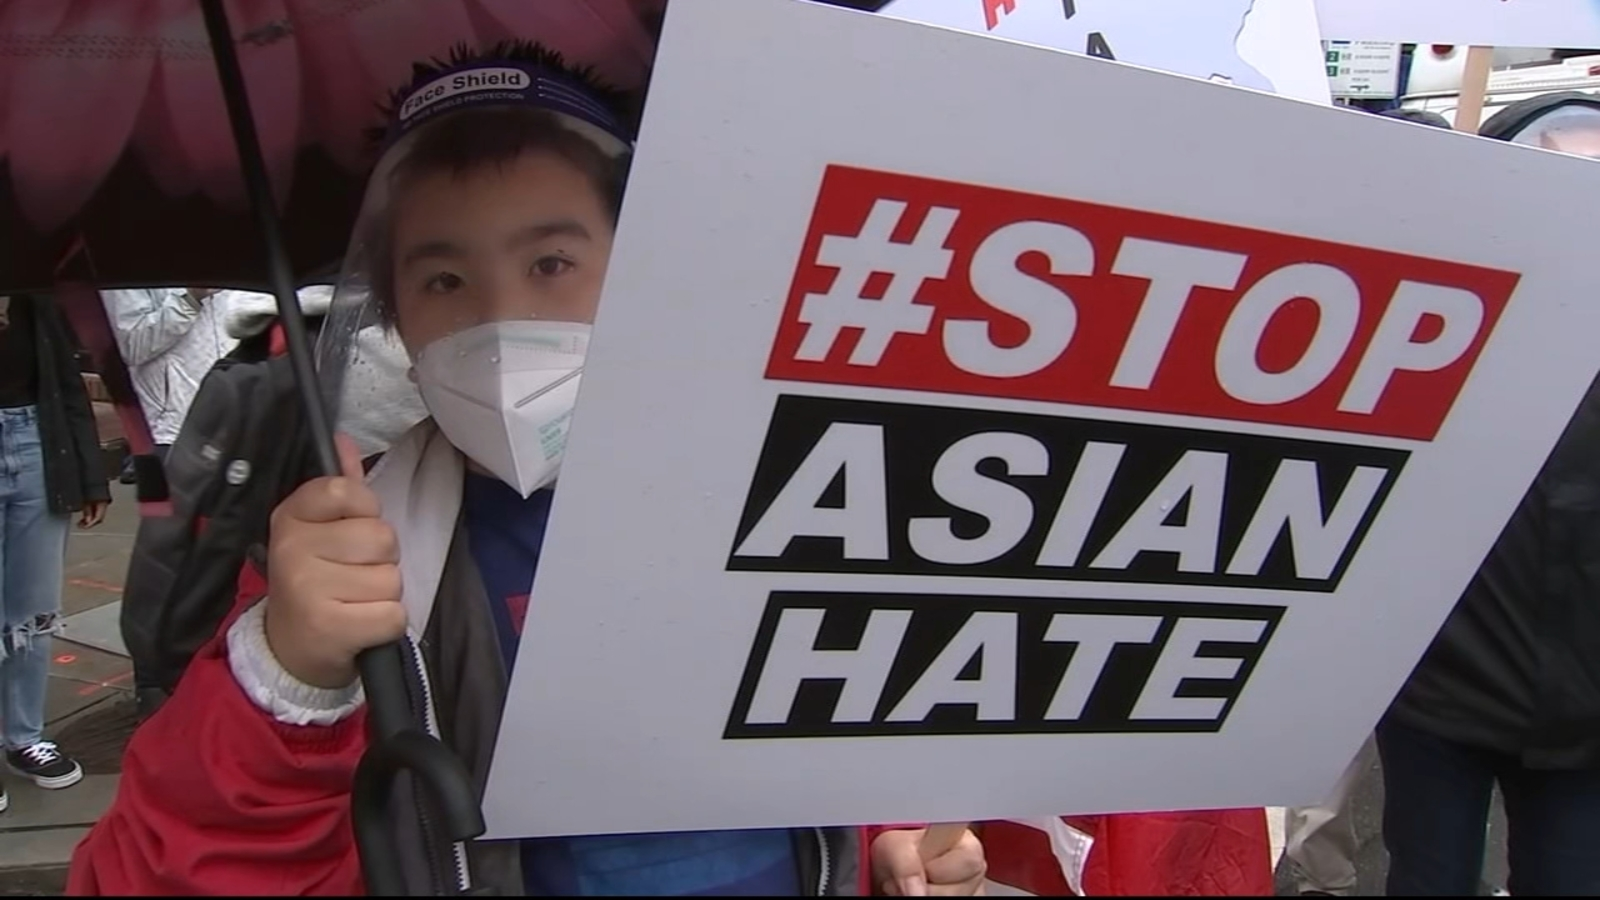 6abc.com: Hundreds rally in Philadelphia's Chinatown to denounce racism against Asian-American and Pacific Islander community